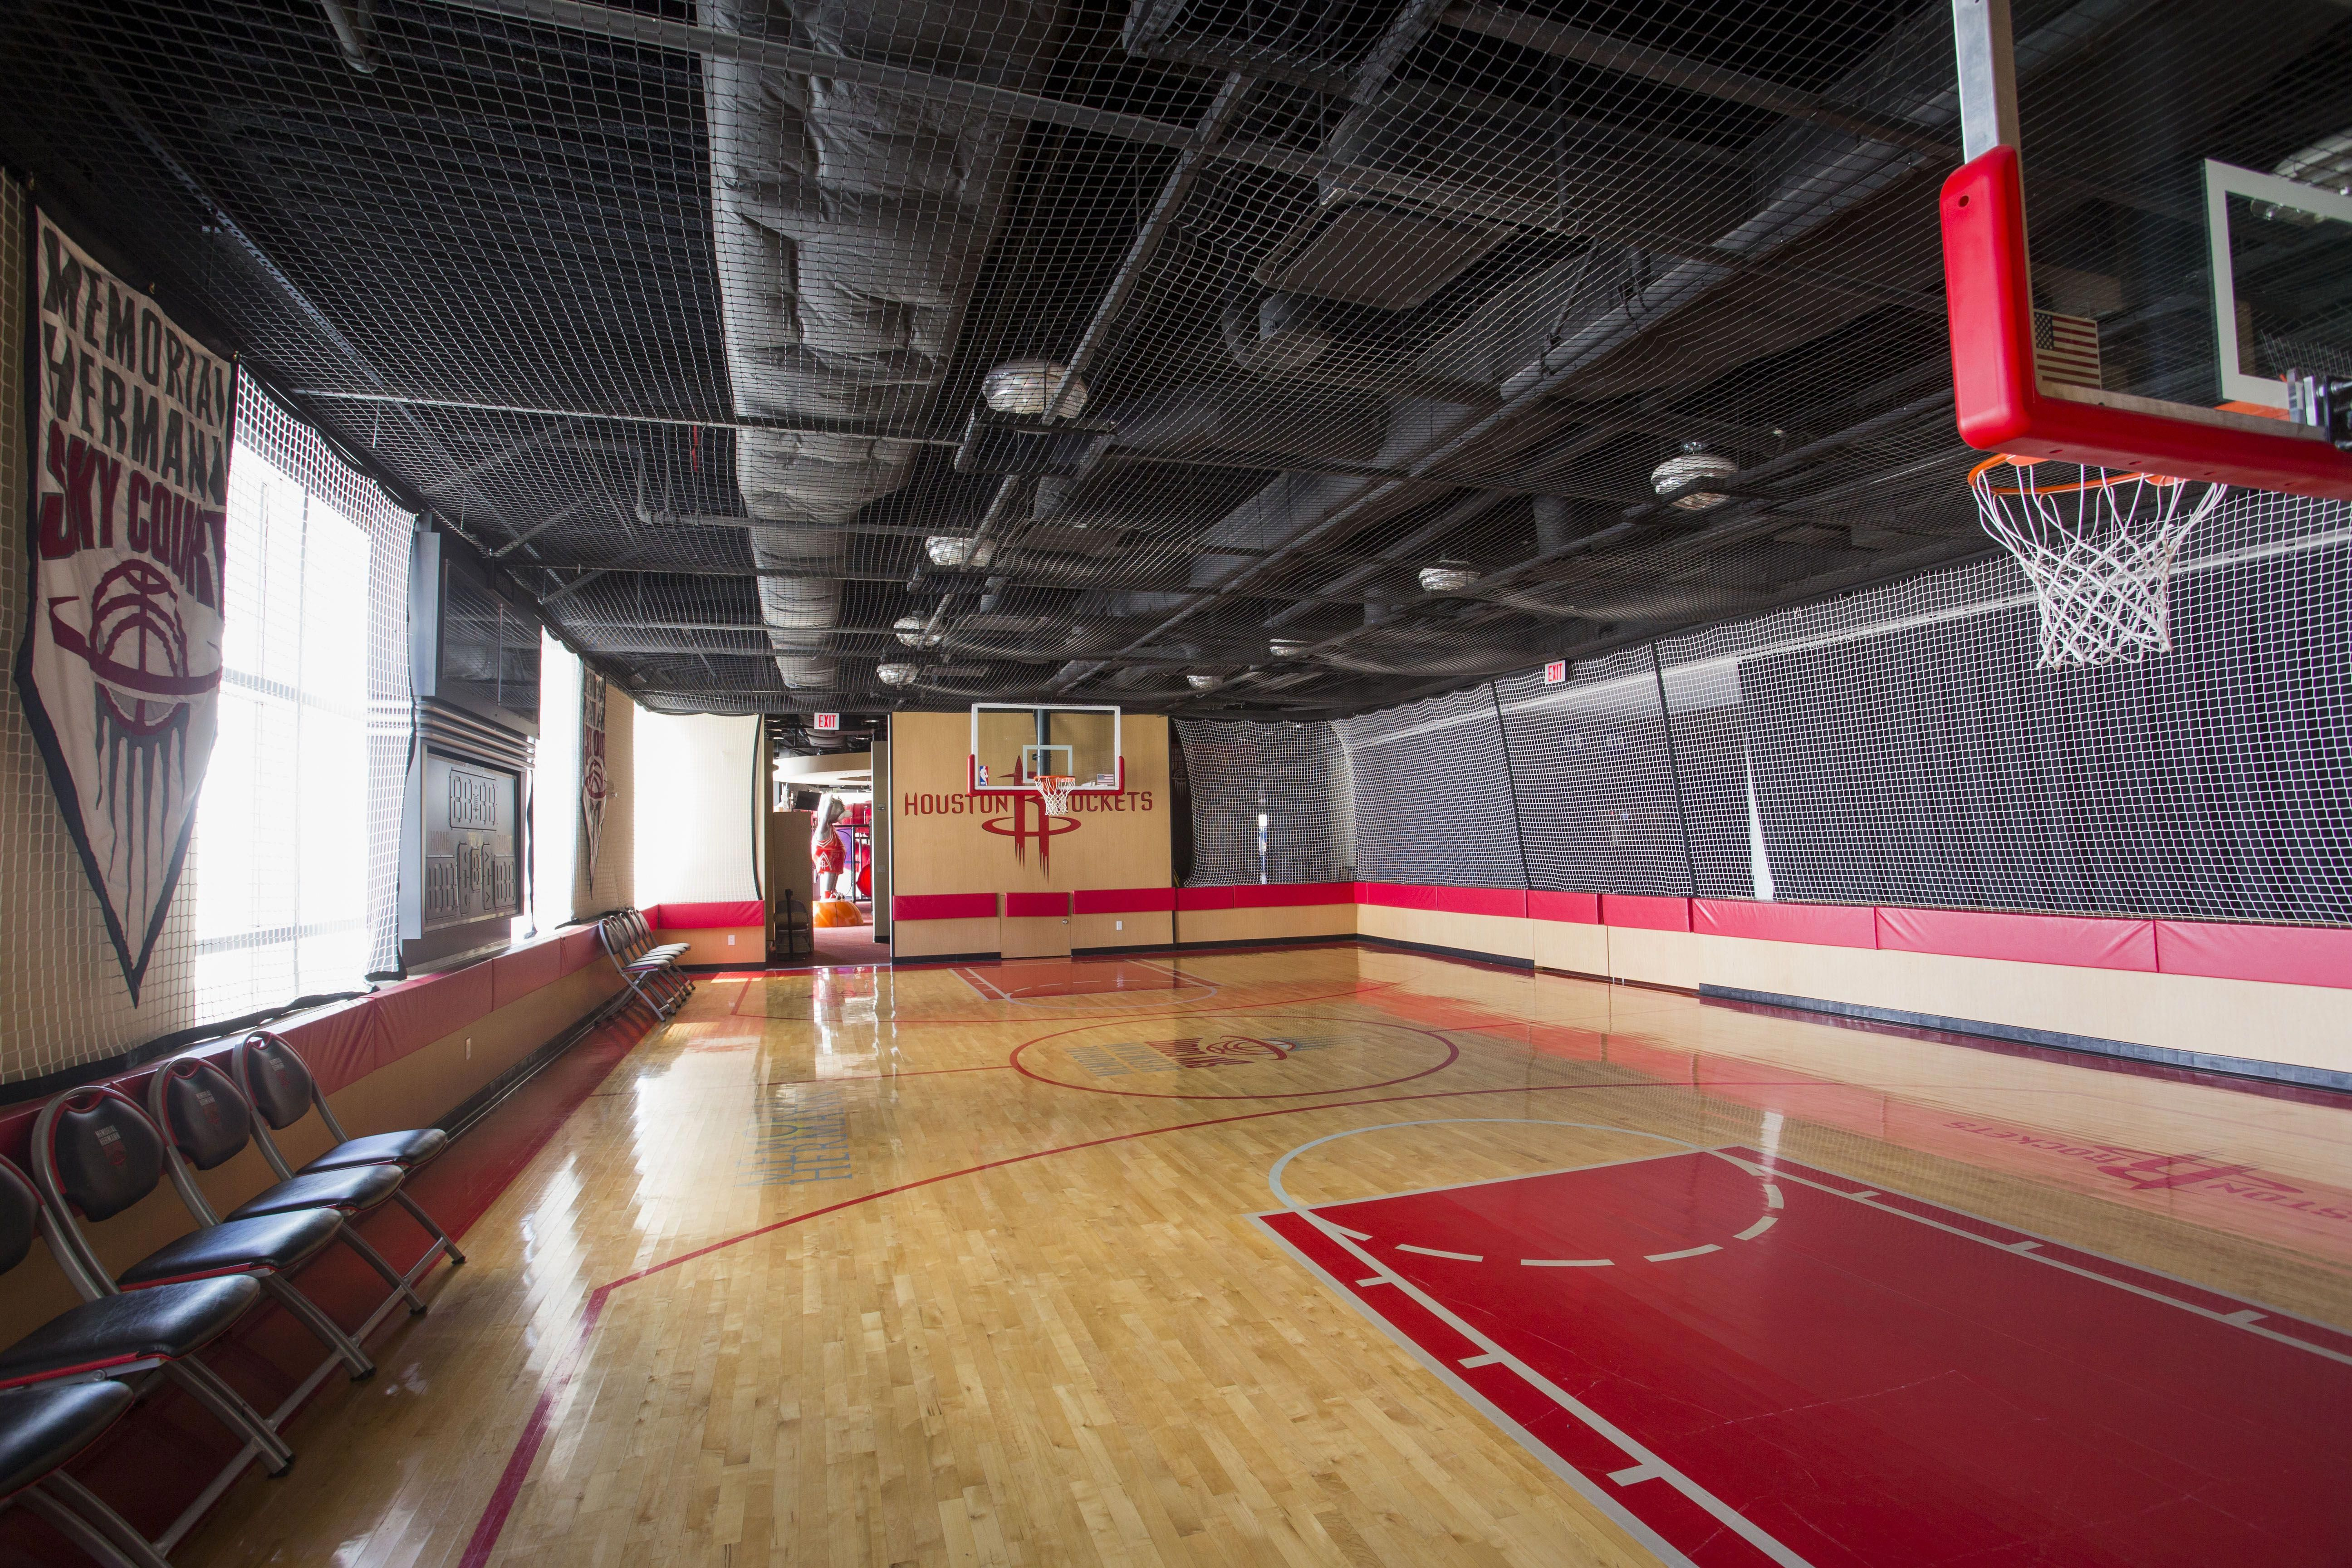 Basketball Open Gym Near Me Basketballfortonight Sky Court Basketball Scoreboard Open Gym